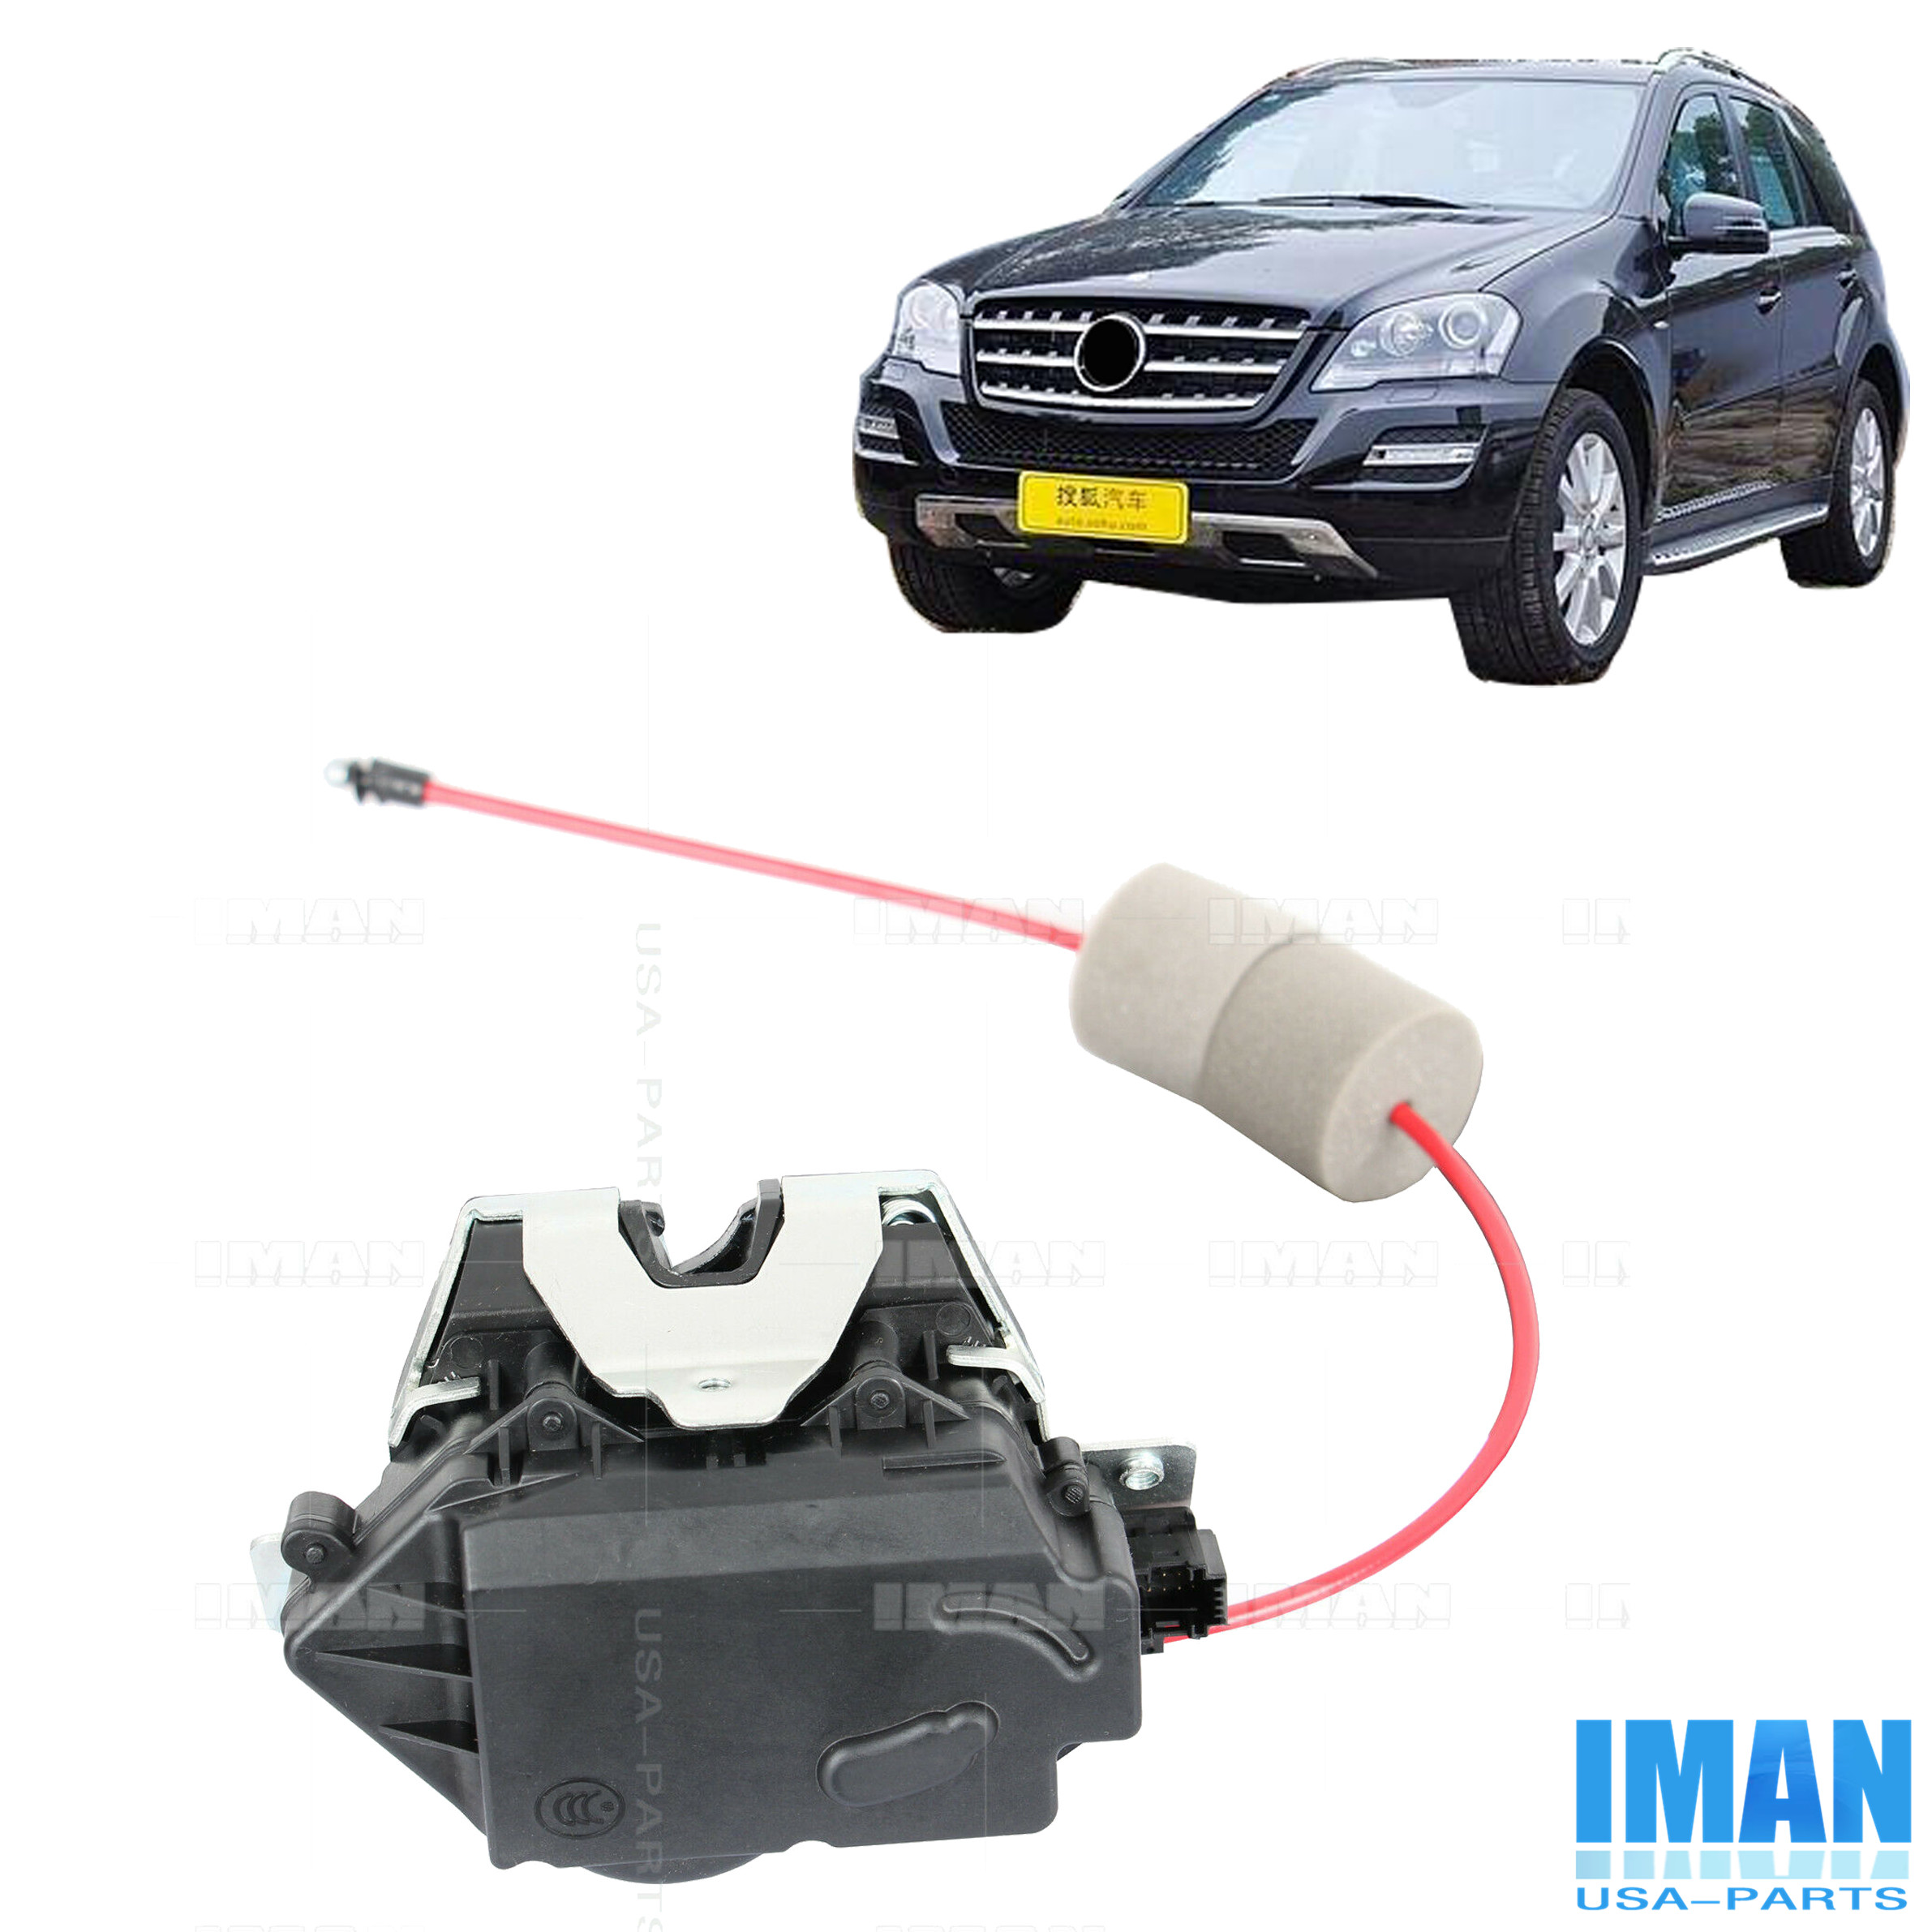 Details about Trunk Lift Latch Tailgate Lock Actuator For Mercedes W164  S211 ML & E 1647400635